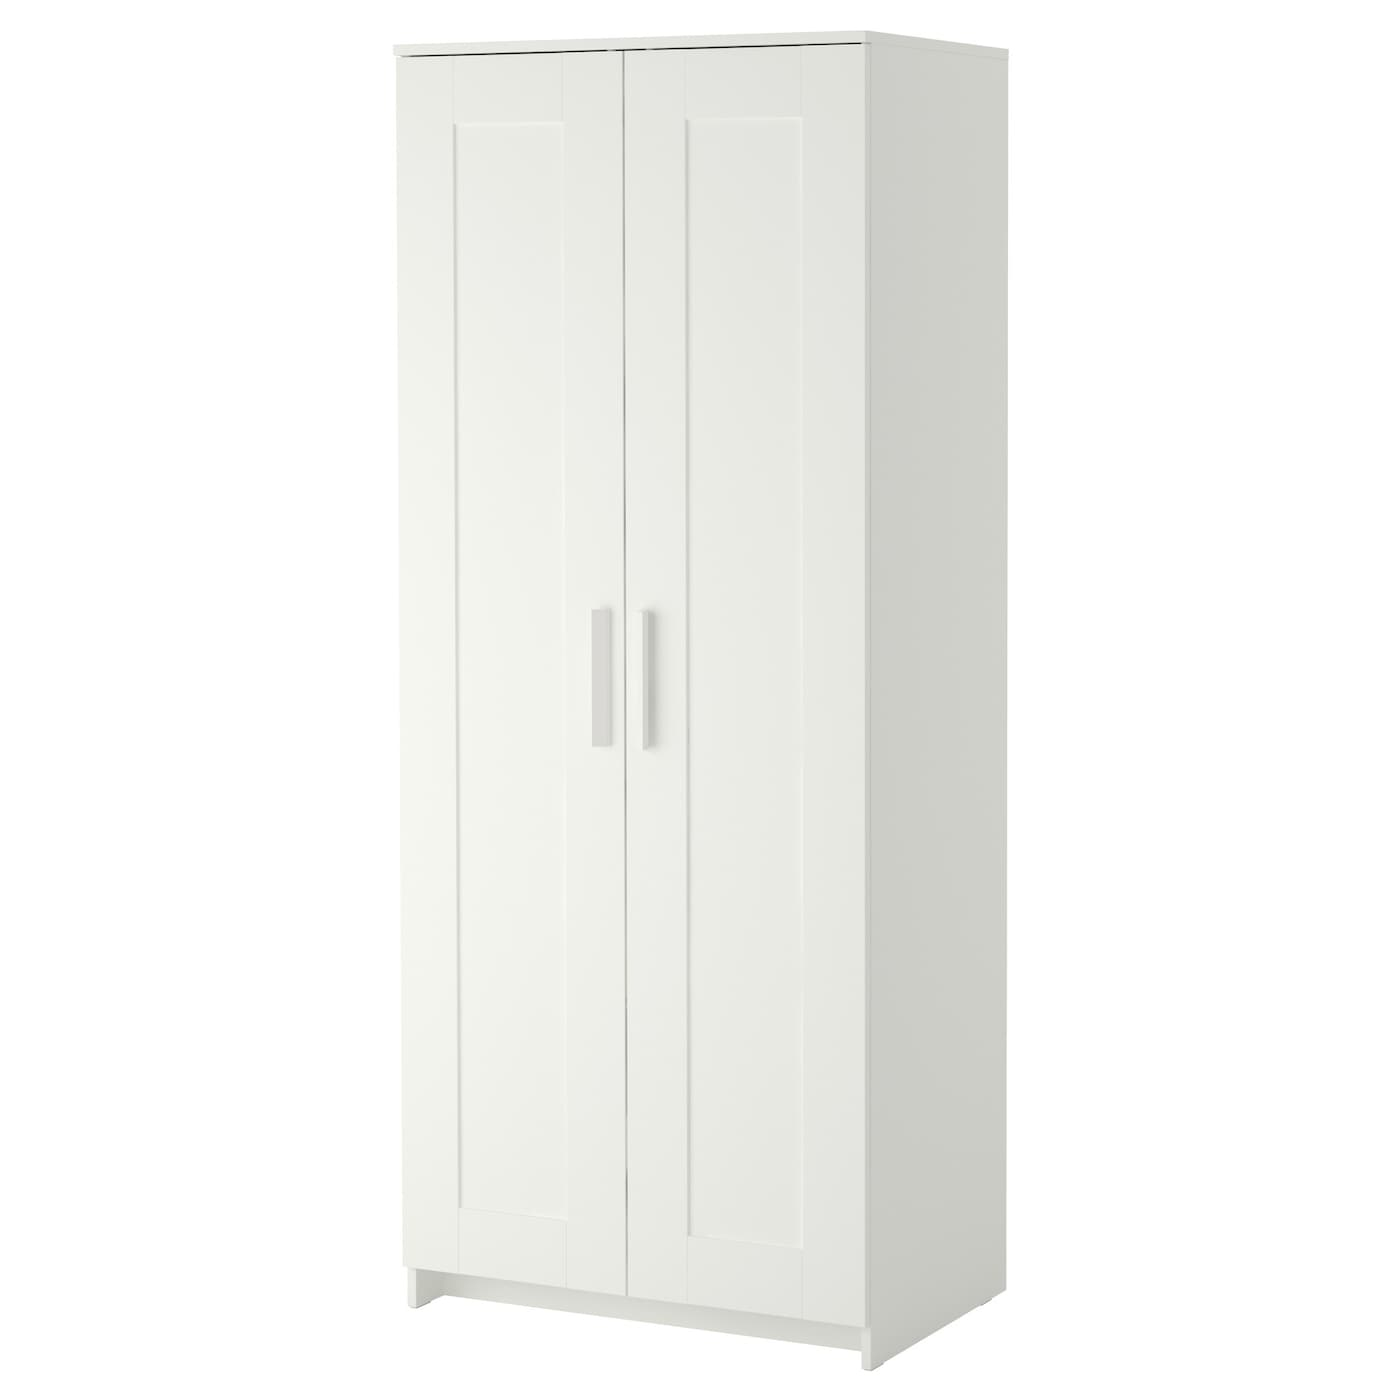 Ikea Dombas Wardrobe Manual ~ IKEA BRIMNES wardrobe with 2 doors Perfect for folded as well as long